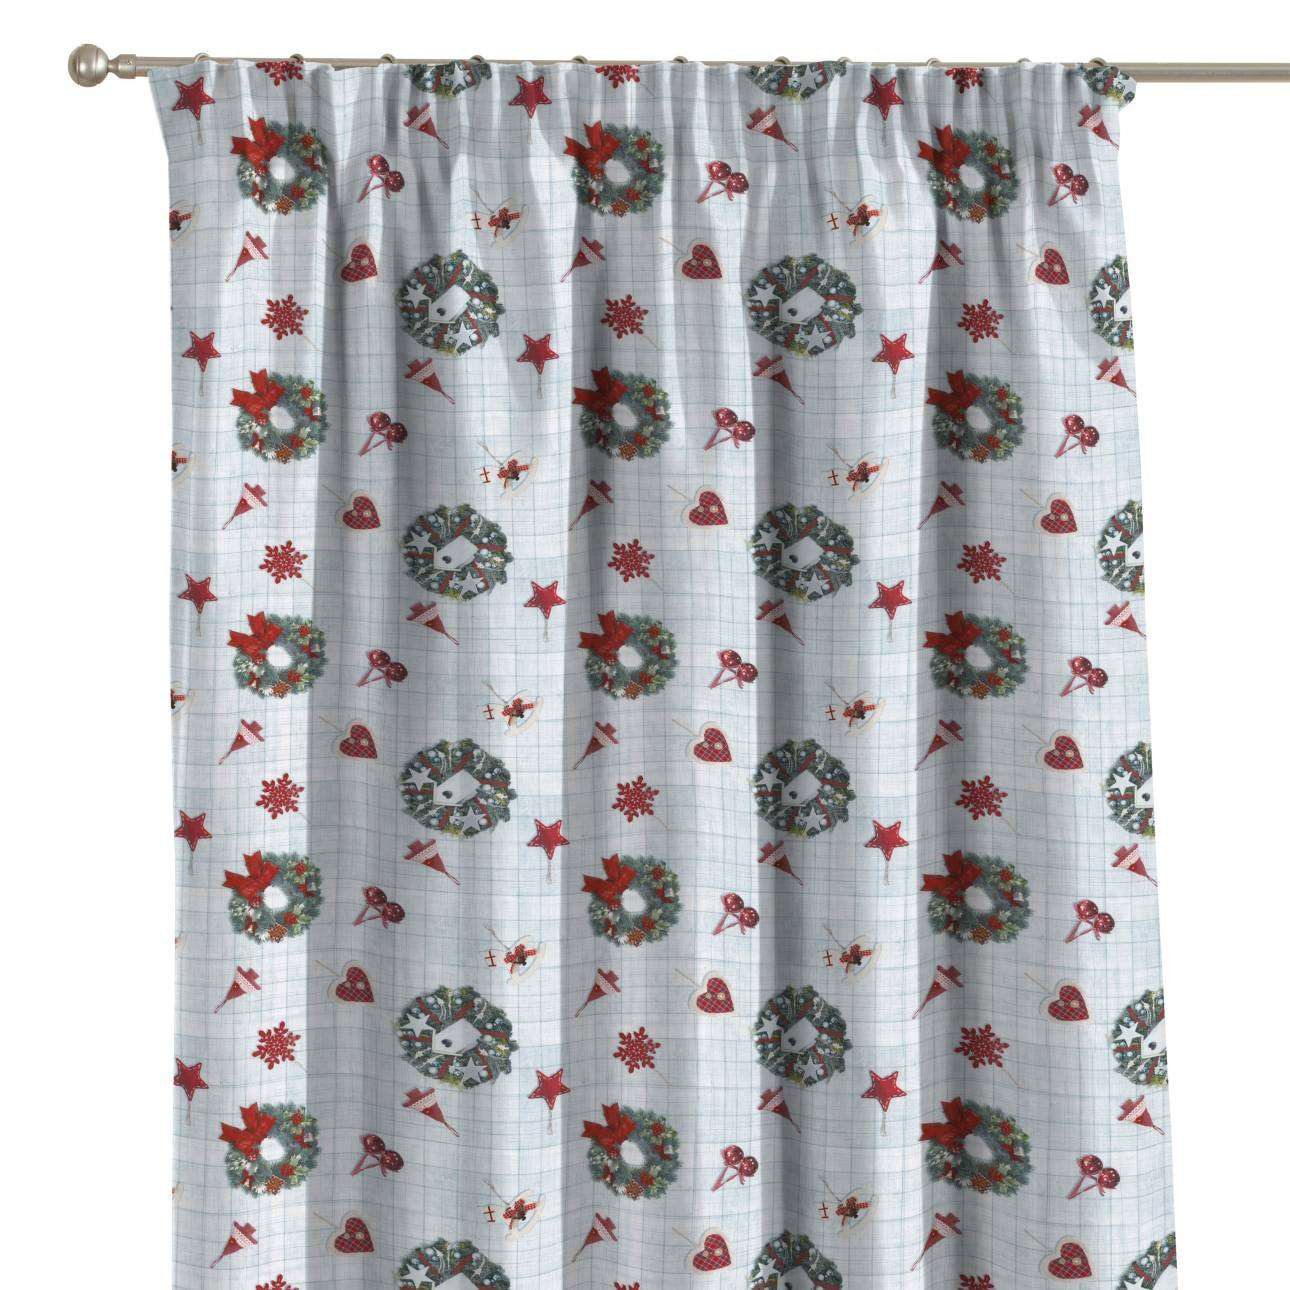 Pencil pleat curtains 130 x 260 cm (51 x 102 inch) in collection Christmas , fabric: 629-26